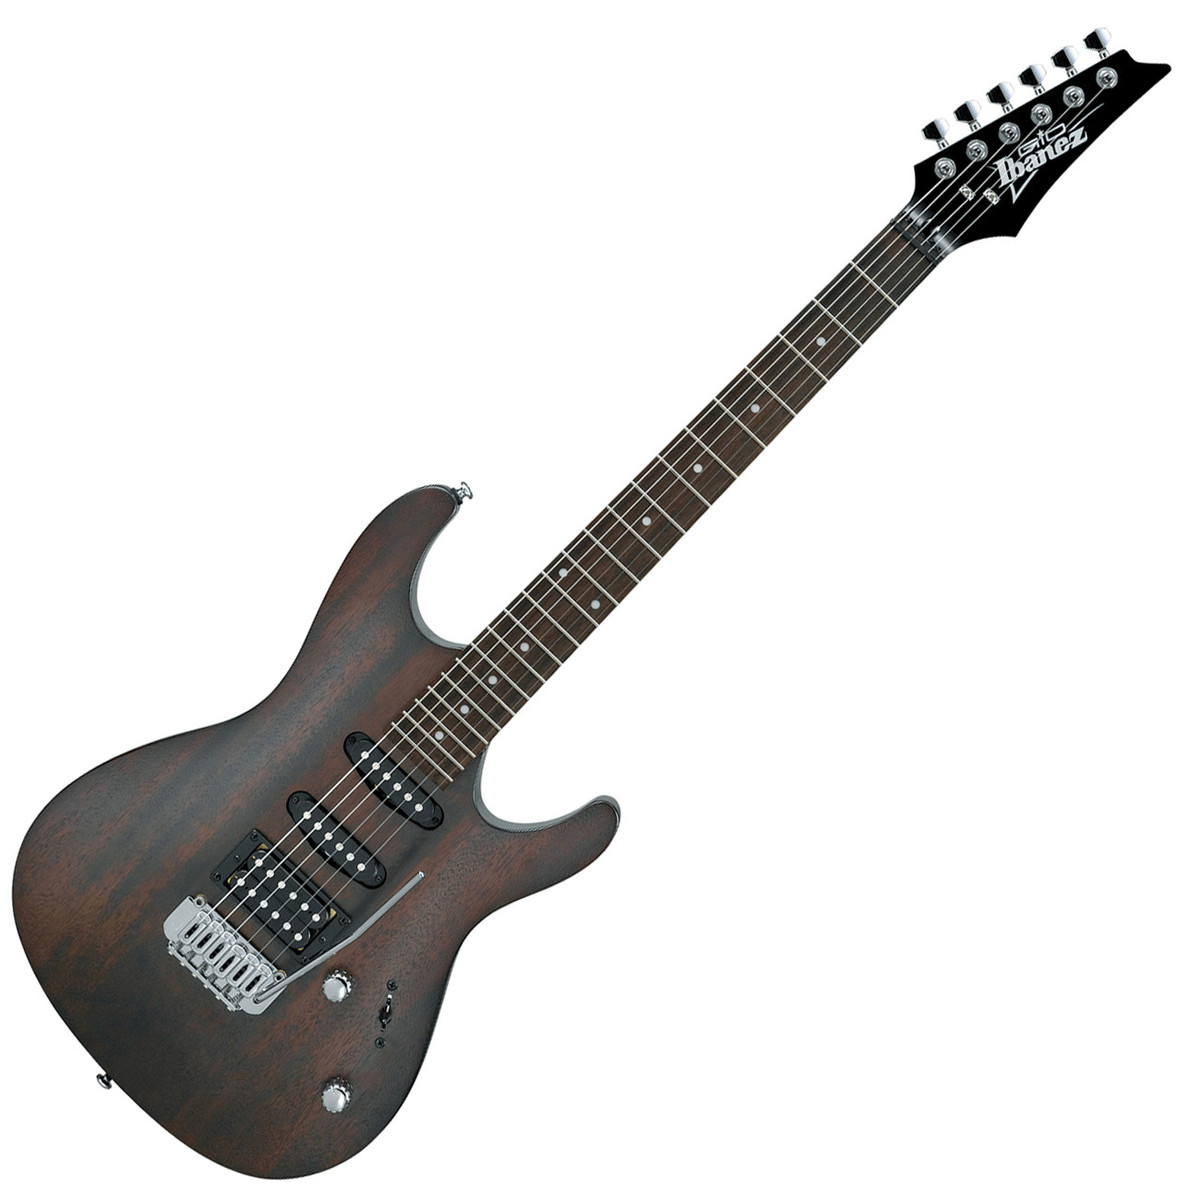 ibanez gio sa60 electric guitar walnut flat at. Black Bedroom Furniture Sets. Home Design Ideas